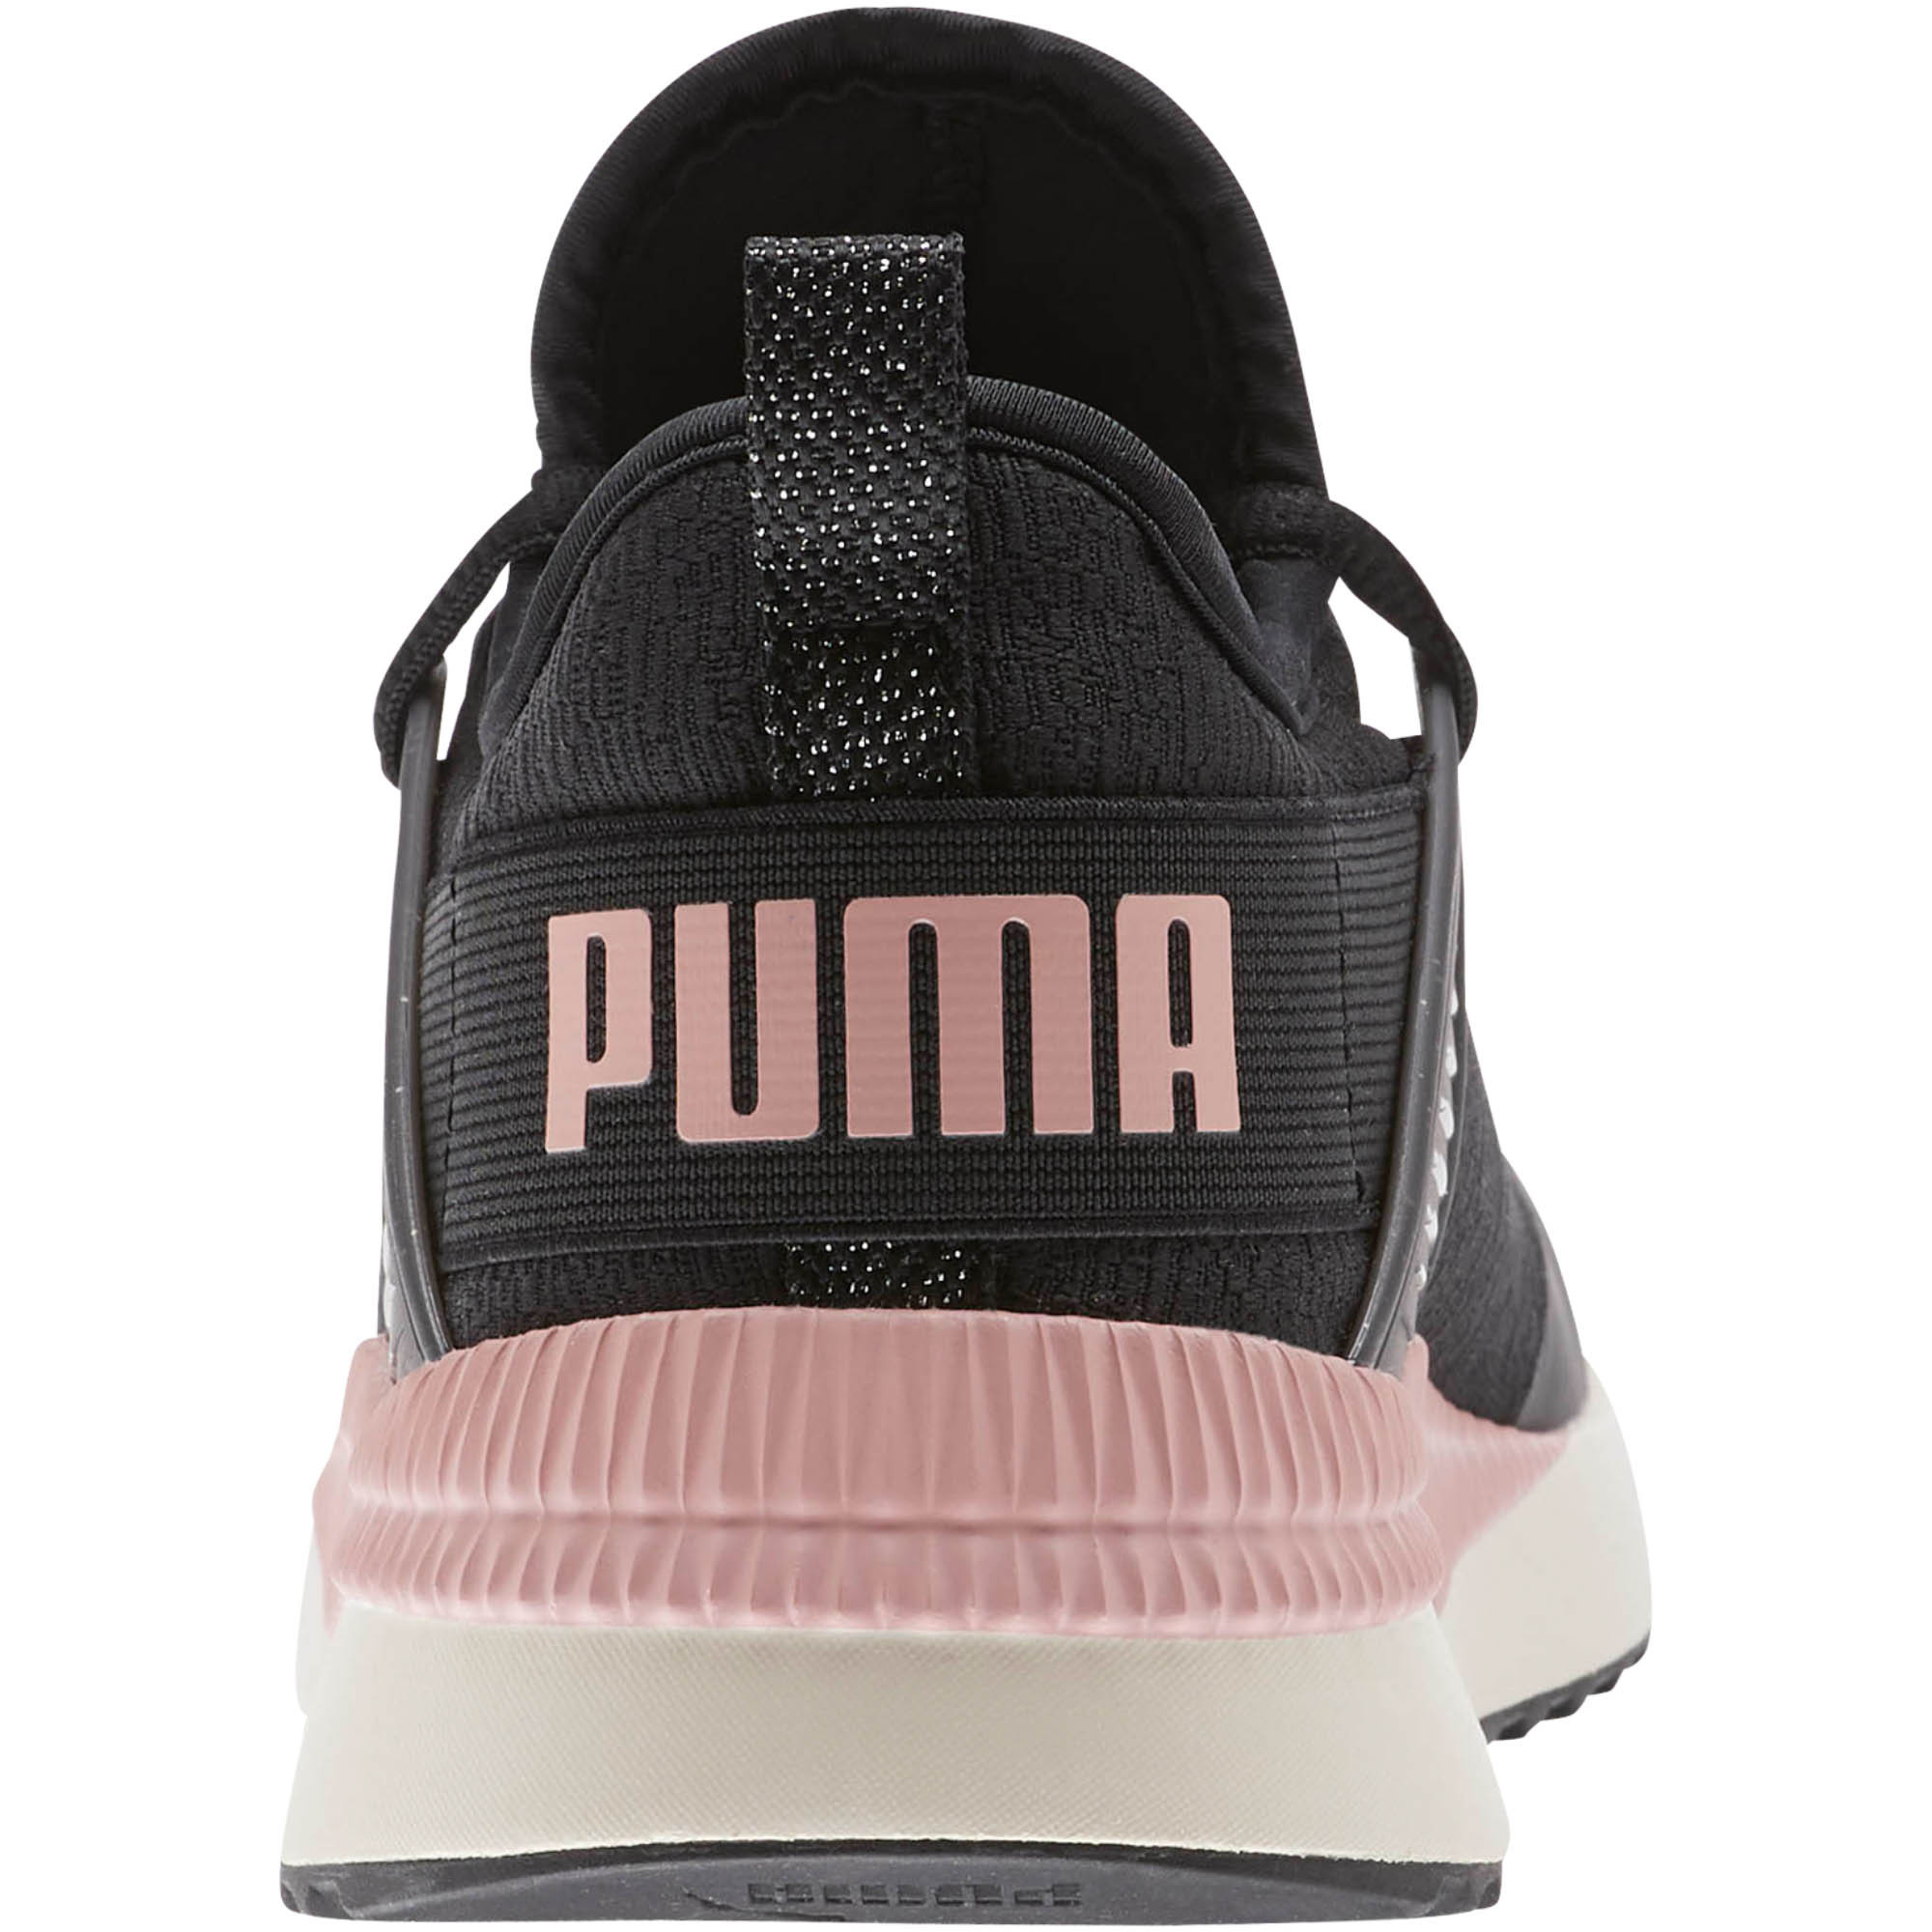 PUMA-Pacer-Next-Cage-Glitter-Women-039-s-Sneakers-Women-Shoe-Basics thumbnail 8